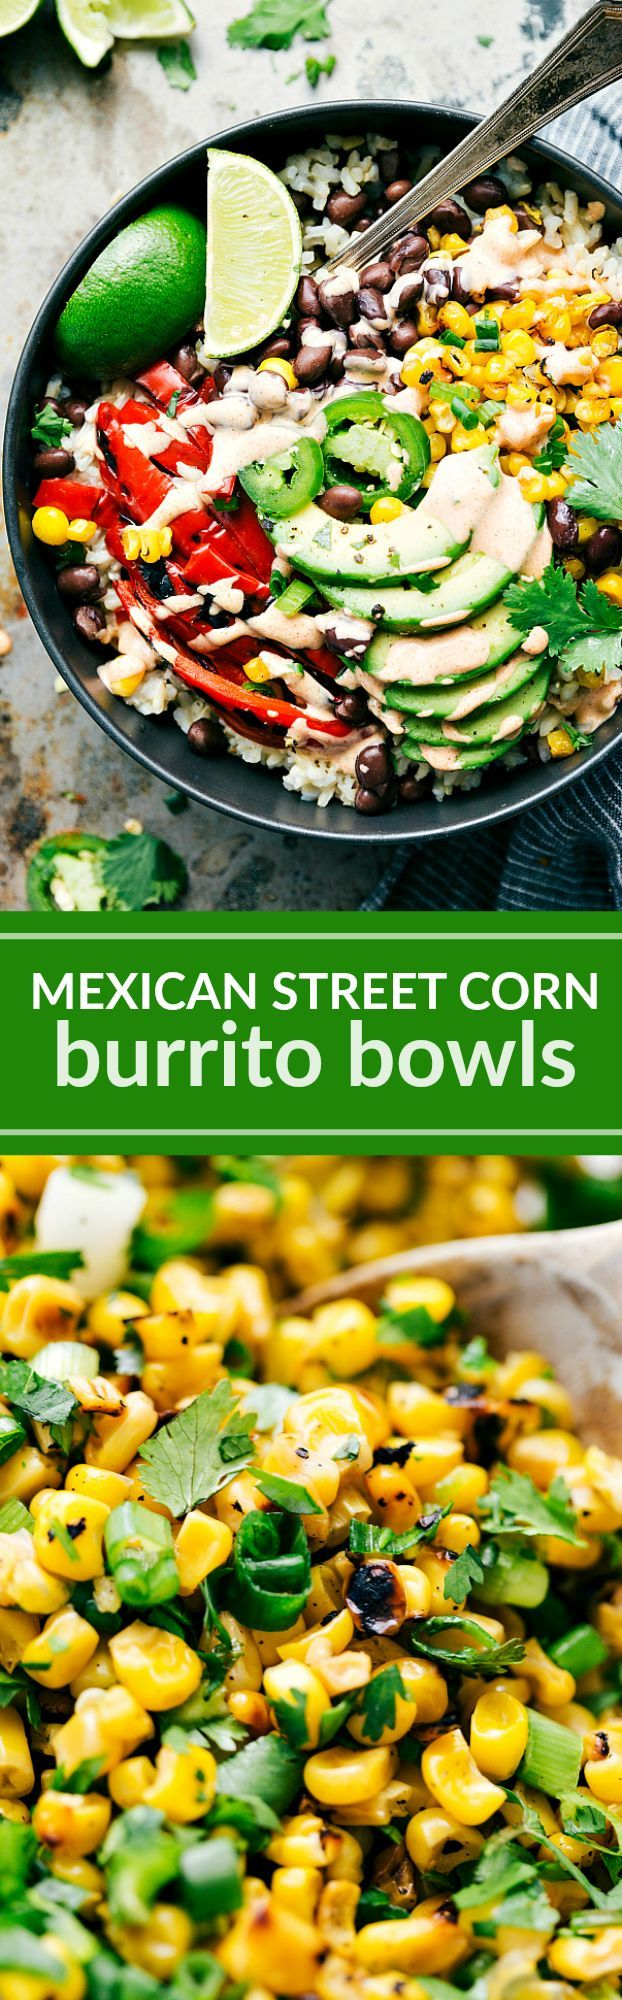 "Deliciously healthy ""Mexican Street Corn"" inspired burrito bowls with the best avocado mayo dressing. From Chelsea's Messy Apron"